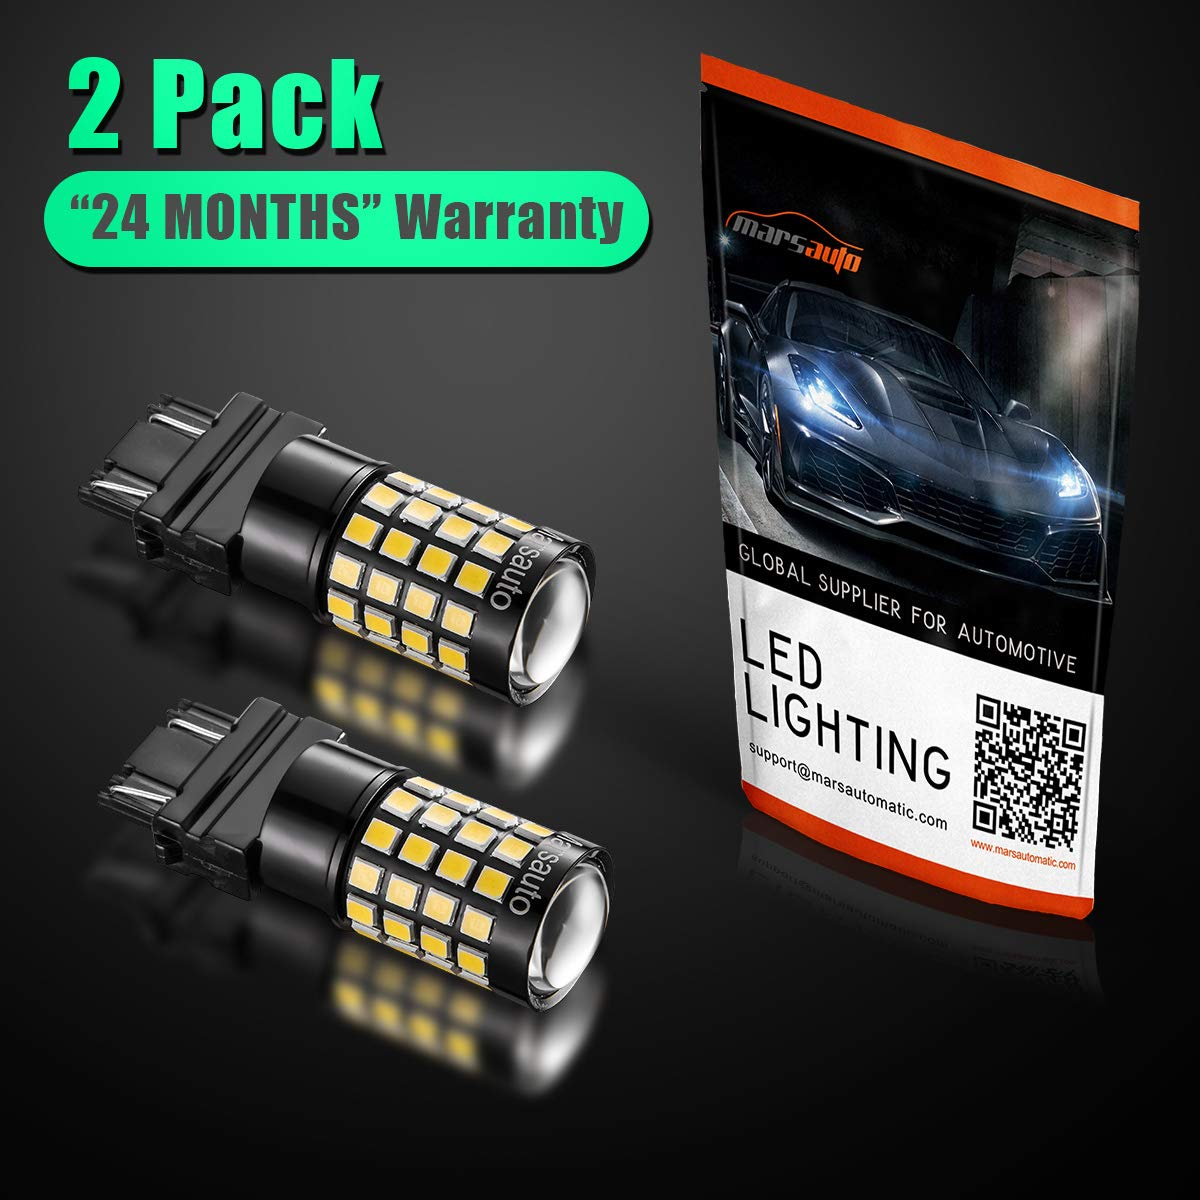 Set of 2 921 912 LED Reverse Backup Bulb Extremely Bright, 2018 UPGRADED Marsauto T15 3030//2835 Chipsets Back up Stop Tail Light Lamp Bulbs Replacement